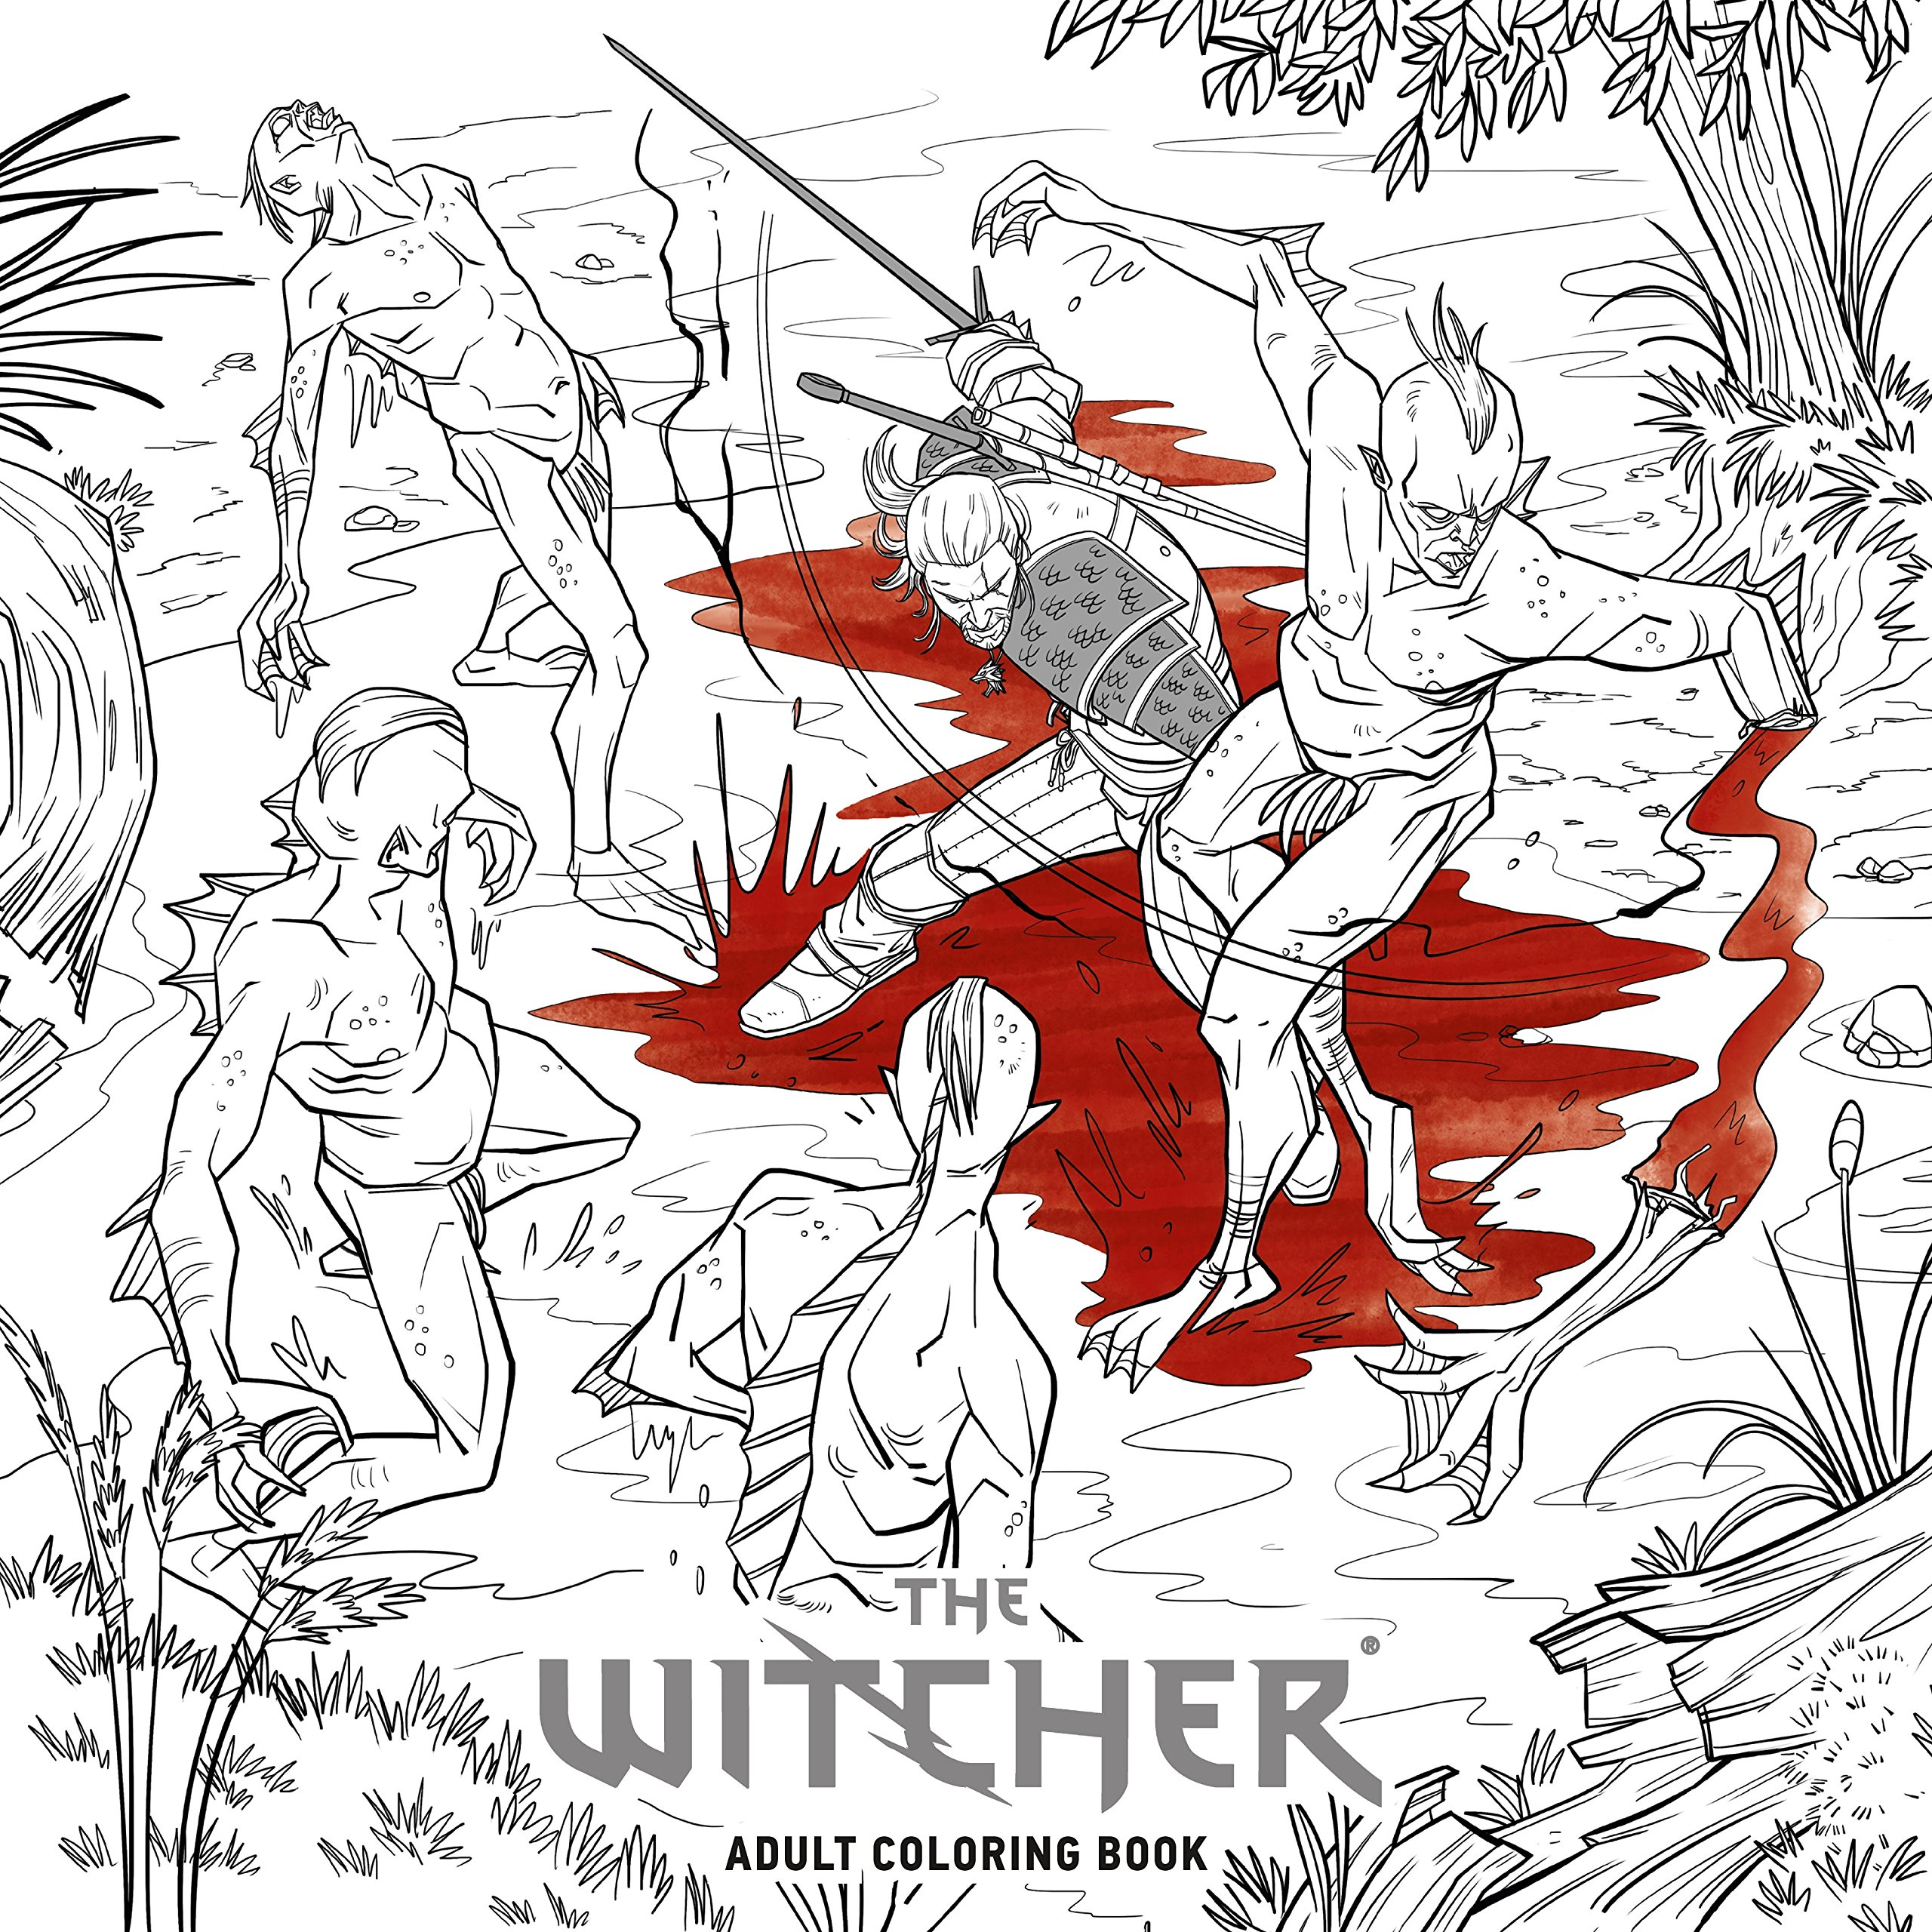 Witcher adult coloring book the amazon cd projekt red witcher adult coloring book the amazon cd projekt red 9781506706375 books solutioingenieria Gallery